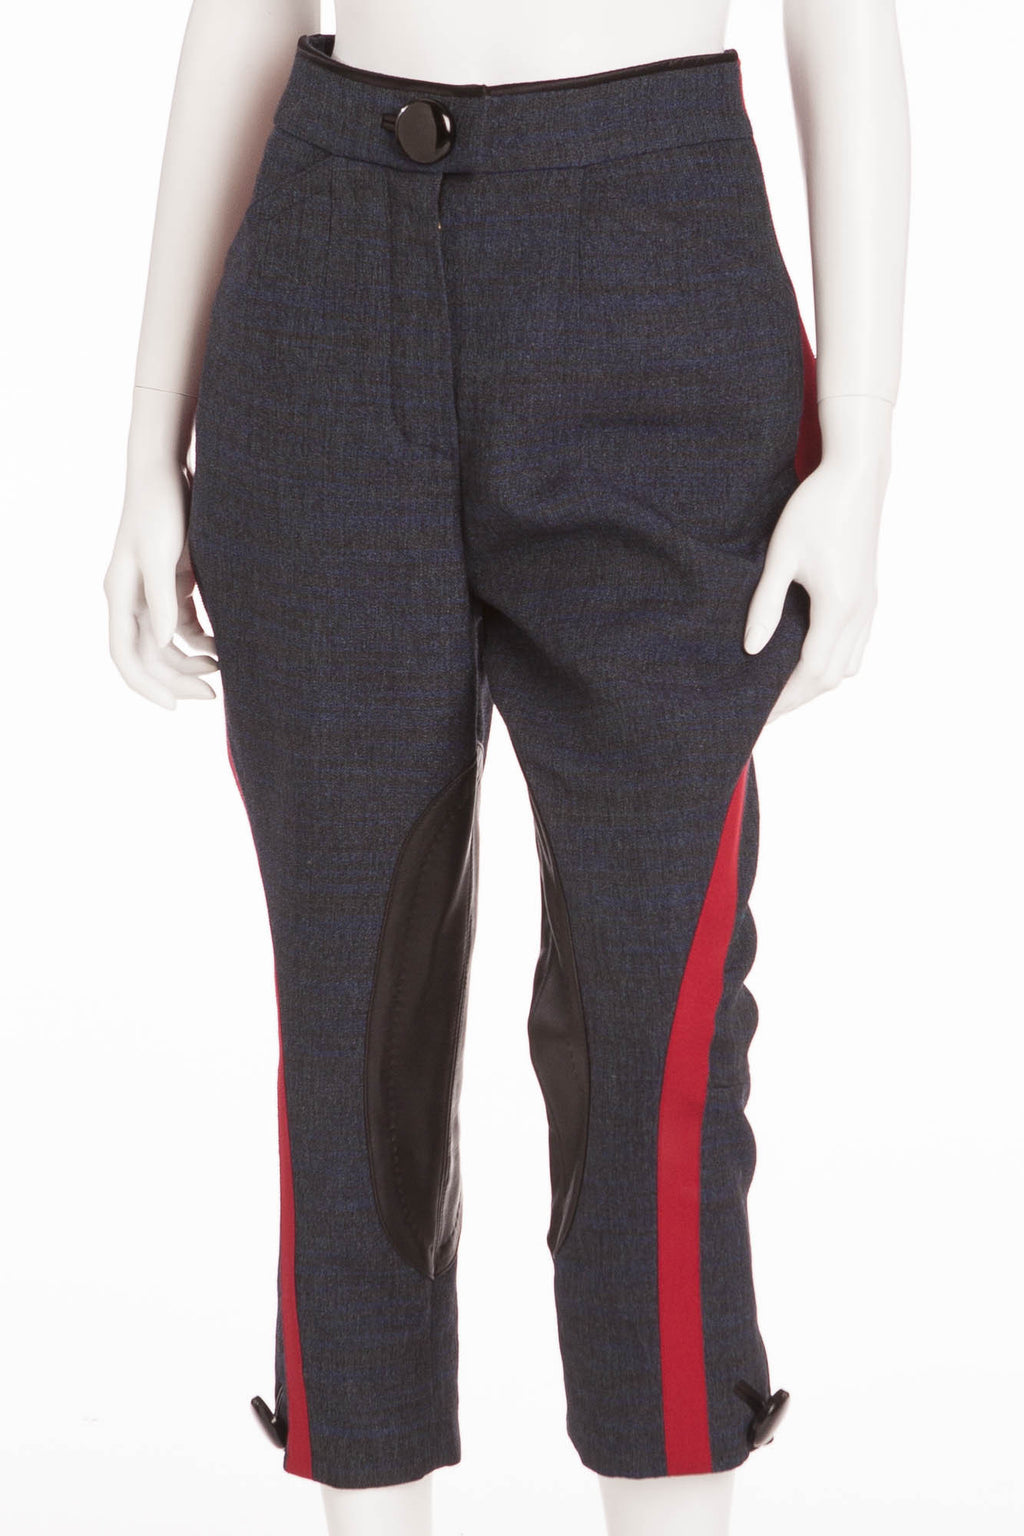 Louis Vuitton - Editorial, From the Iconic Fall 2011 Runway Collection - New Blue Jodhpur Style Pants with Red Trim- FR 38